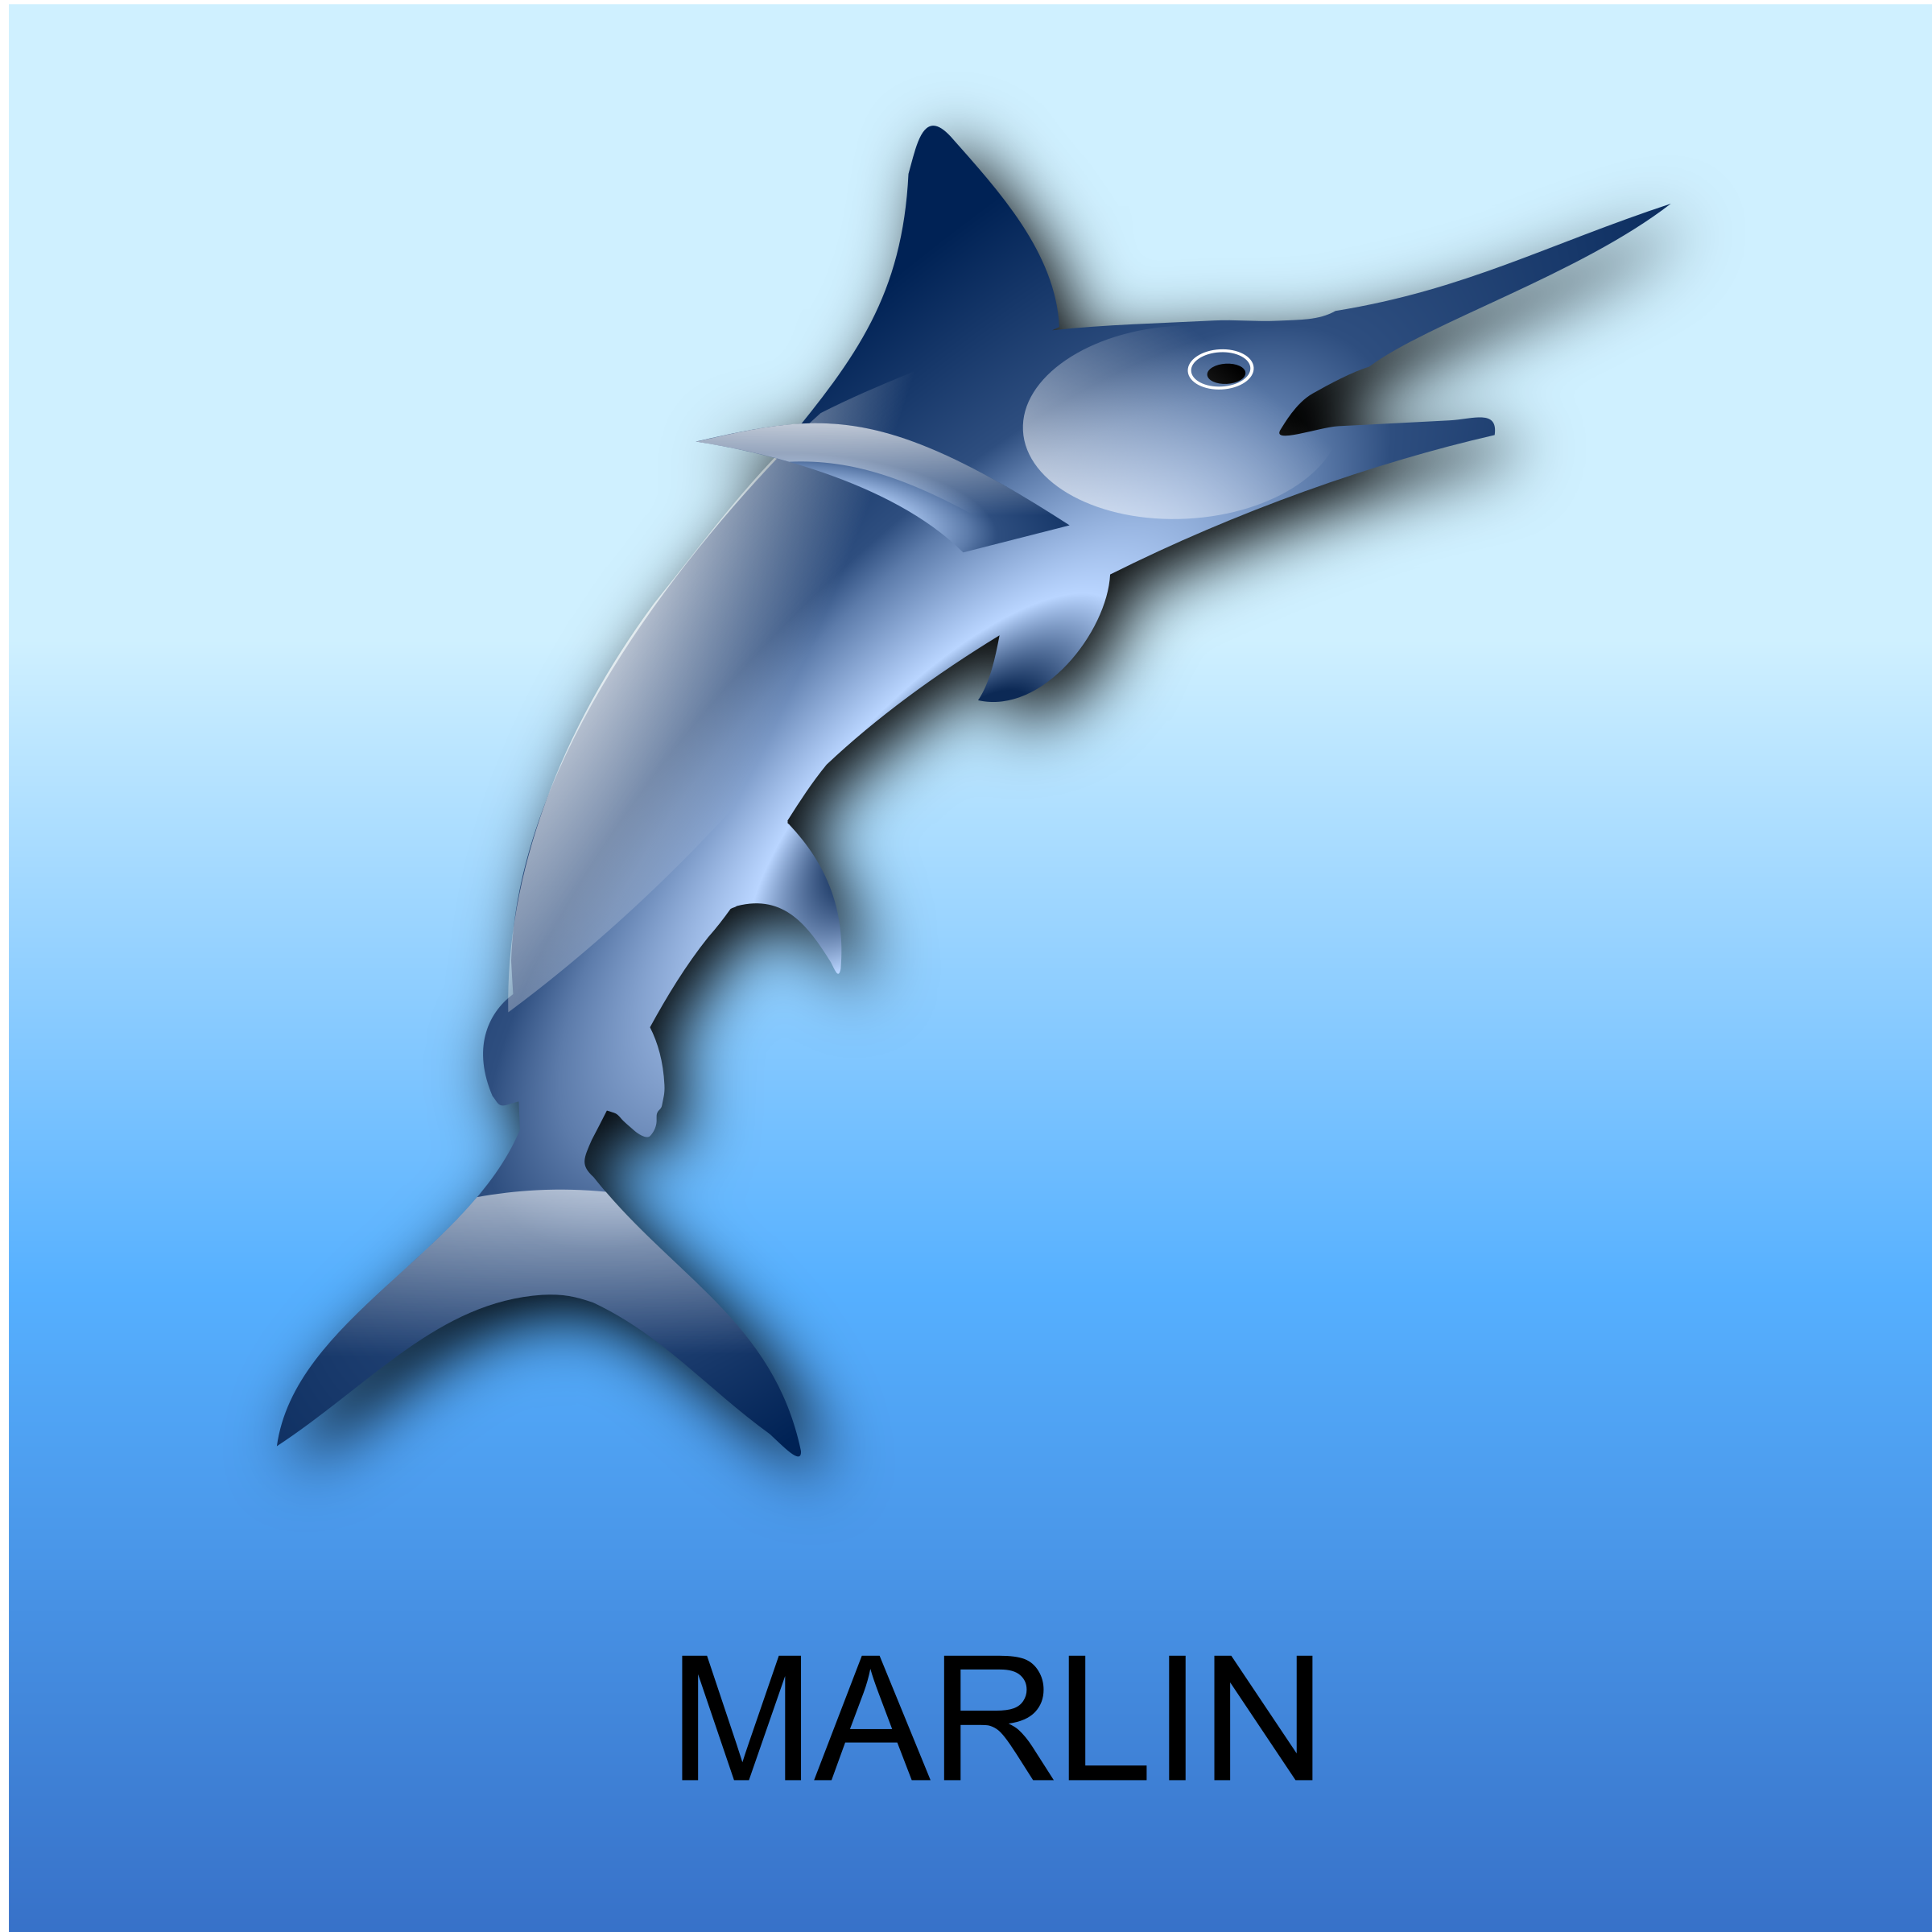 Marlin by pepinux